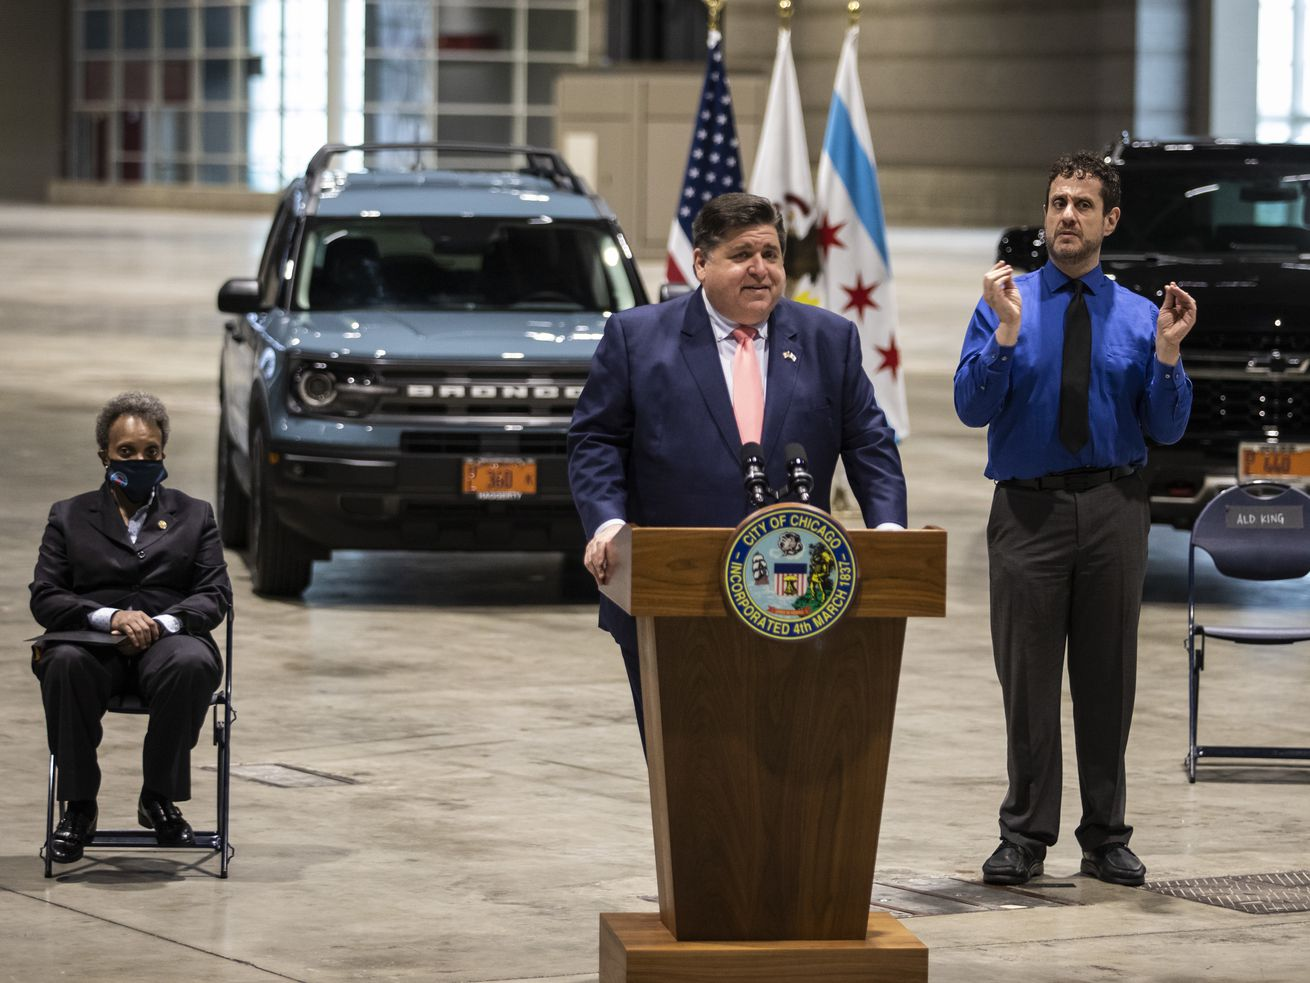 Gov. J.B. Pritzker speaks during a news conference at McCormick Place, Tuesday morning as Mayor Lori Lightfoot listens.